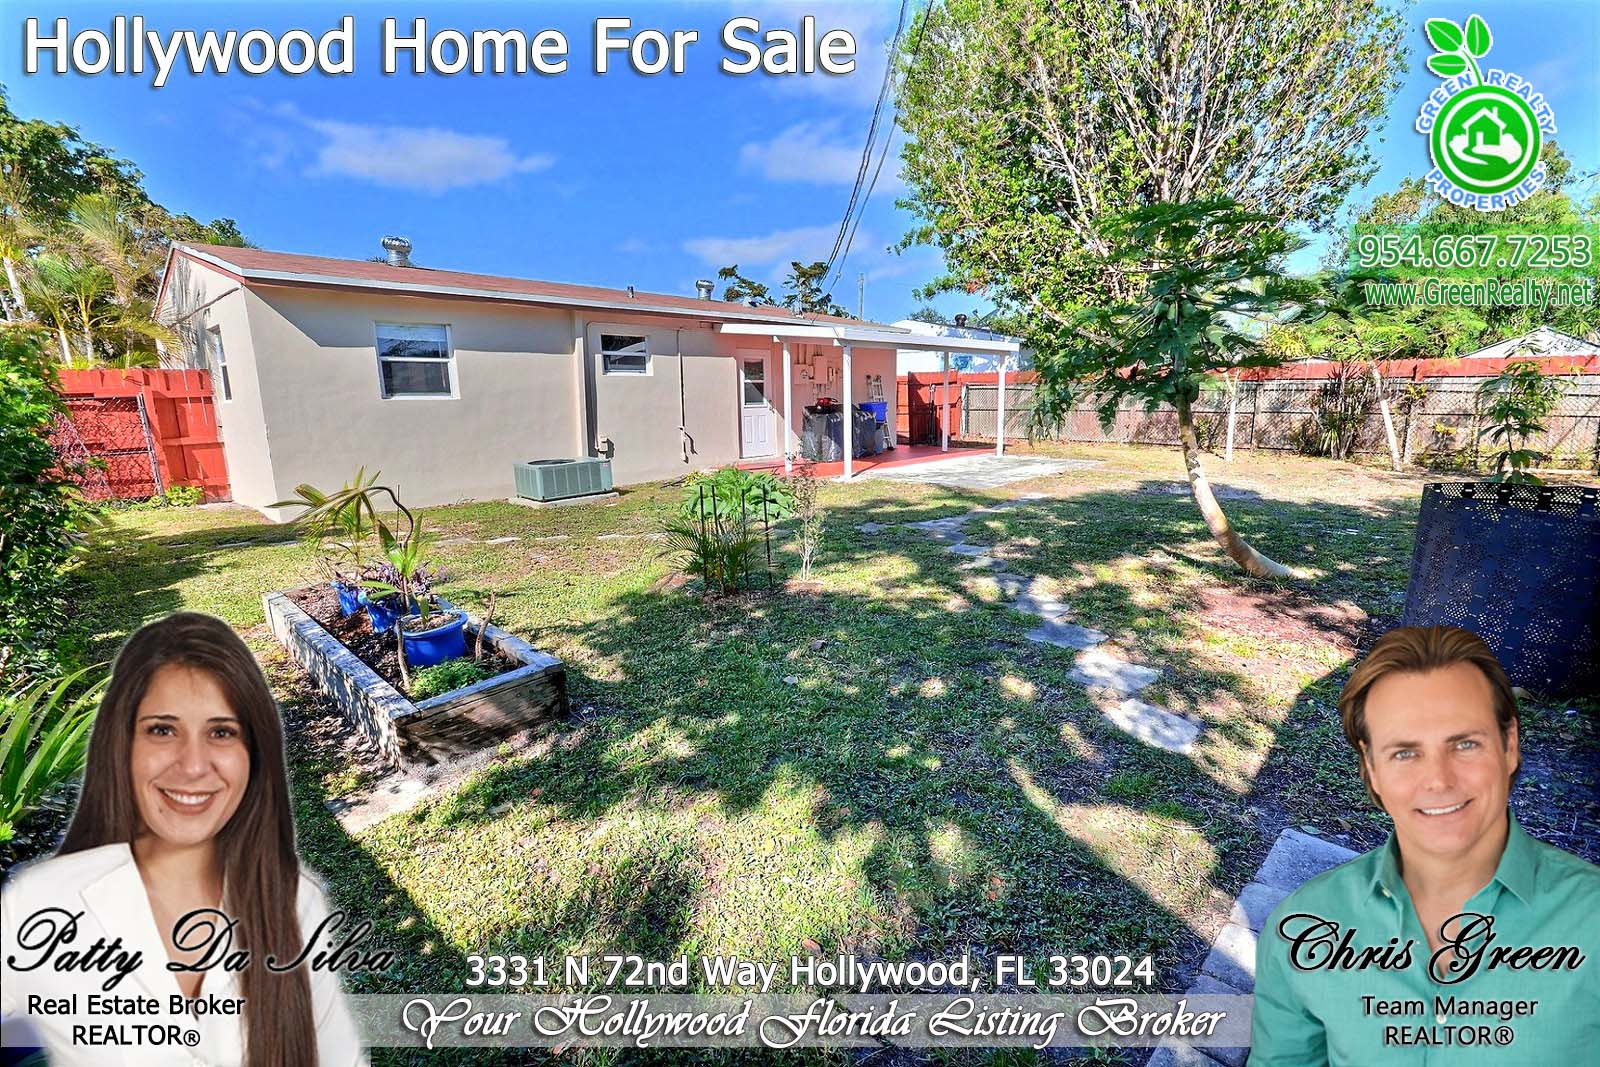 17 Homes For Sale in Hollywood Florida (7)